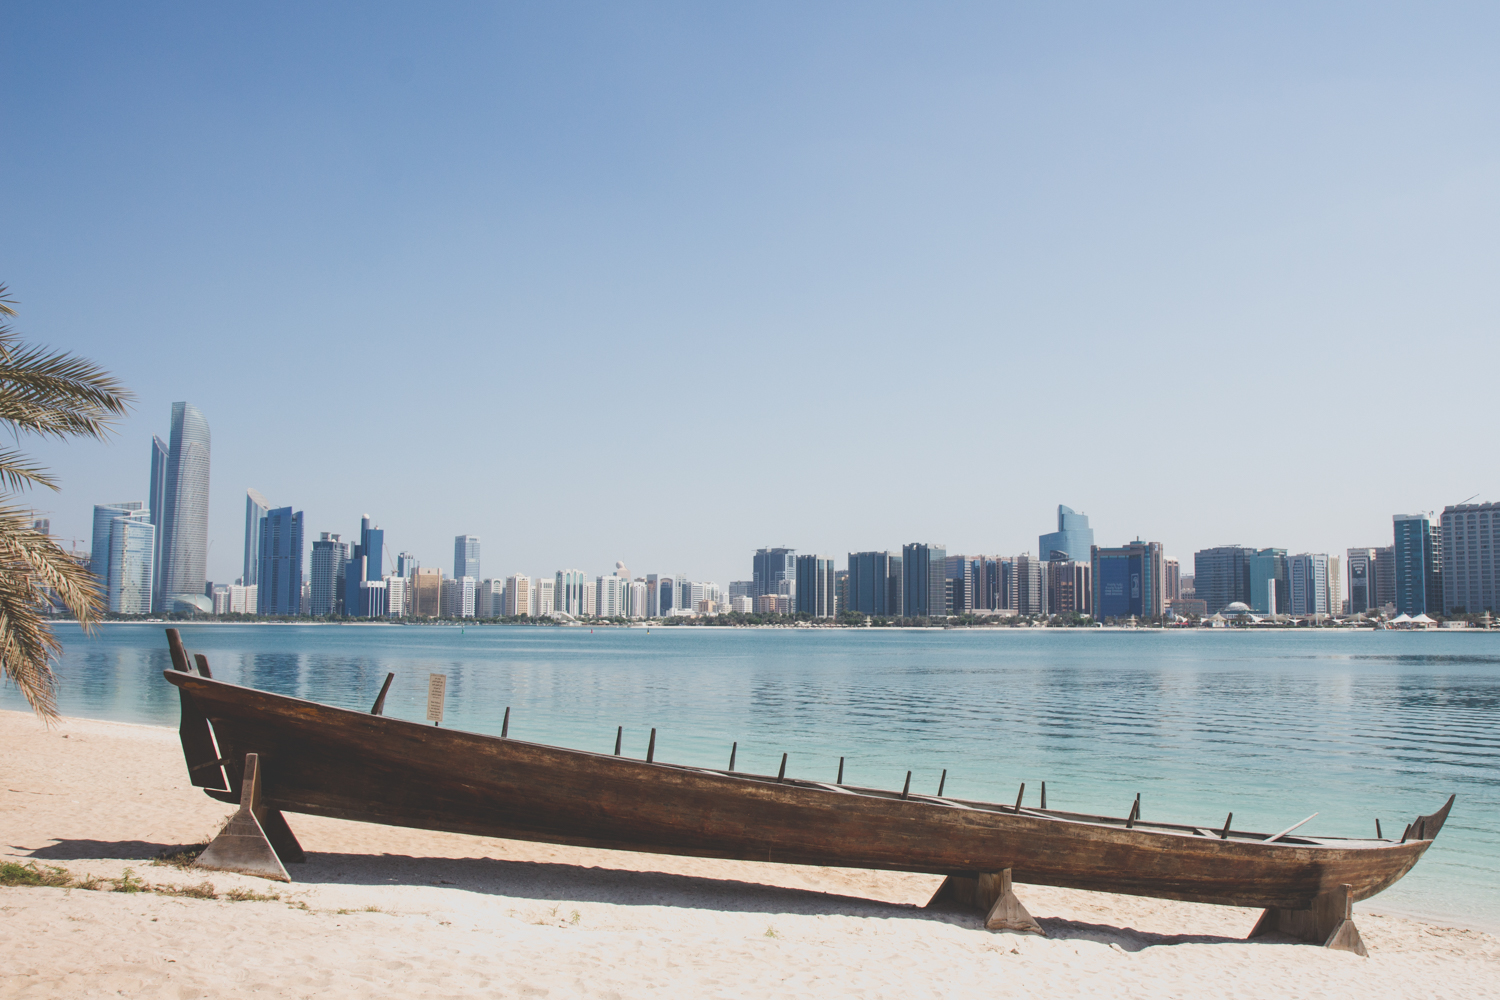 abu dhabi skyline, things to do in abu dhabi